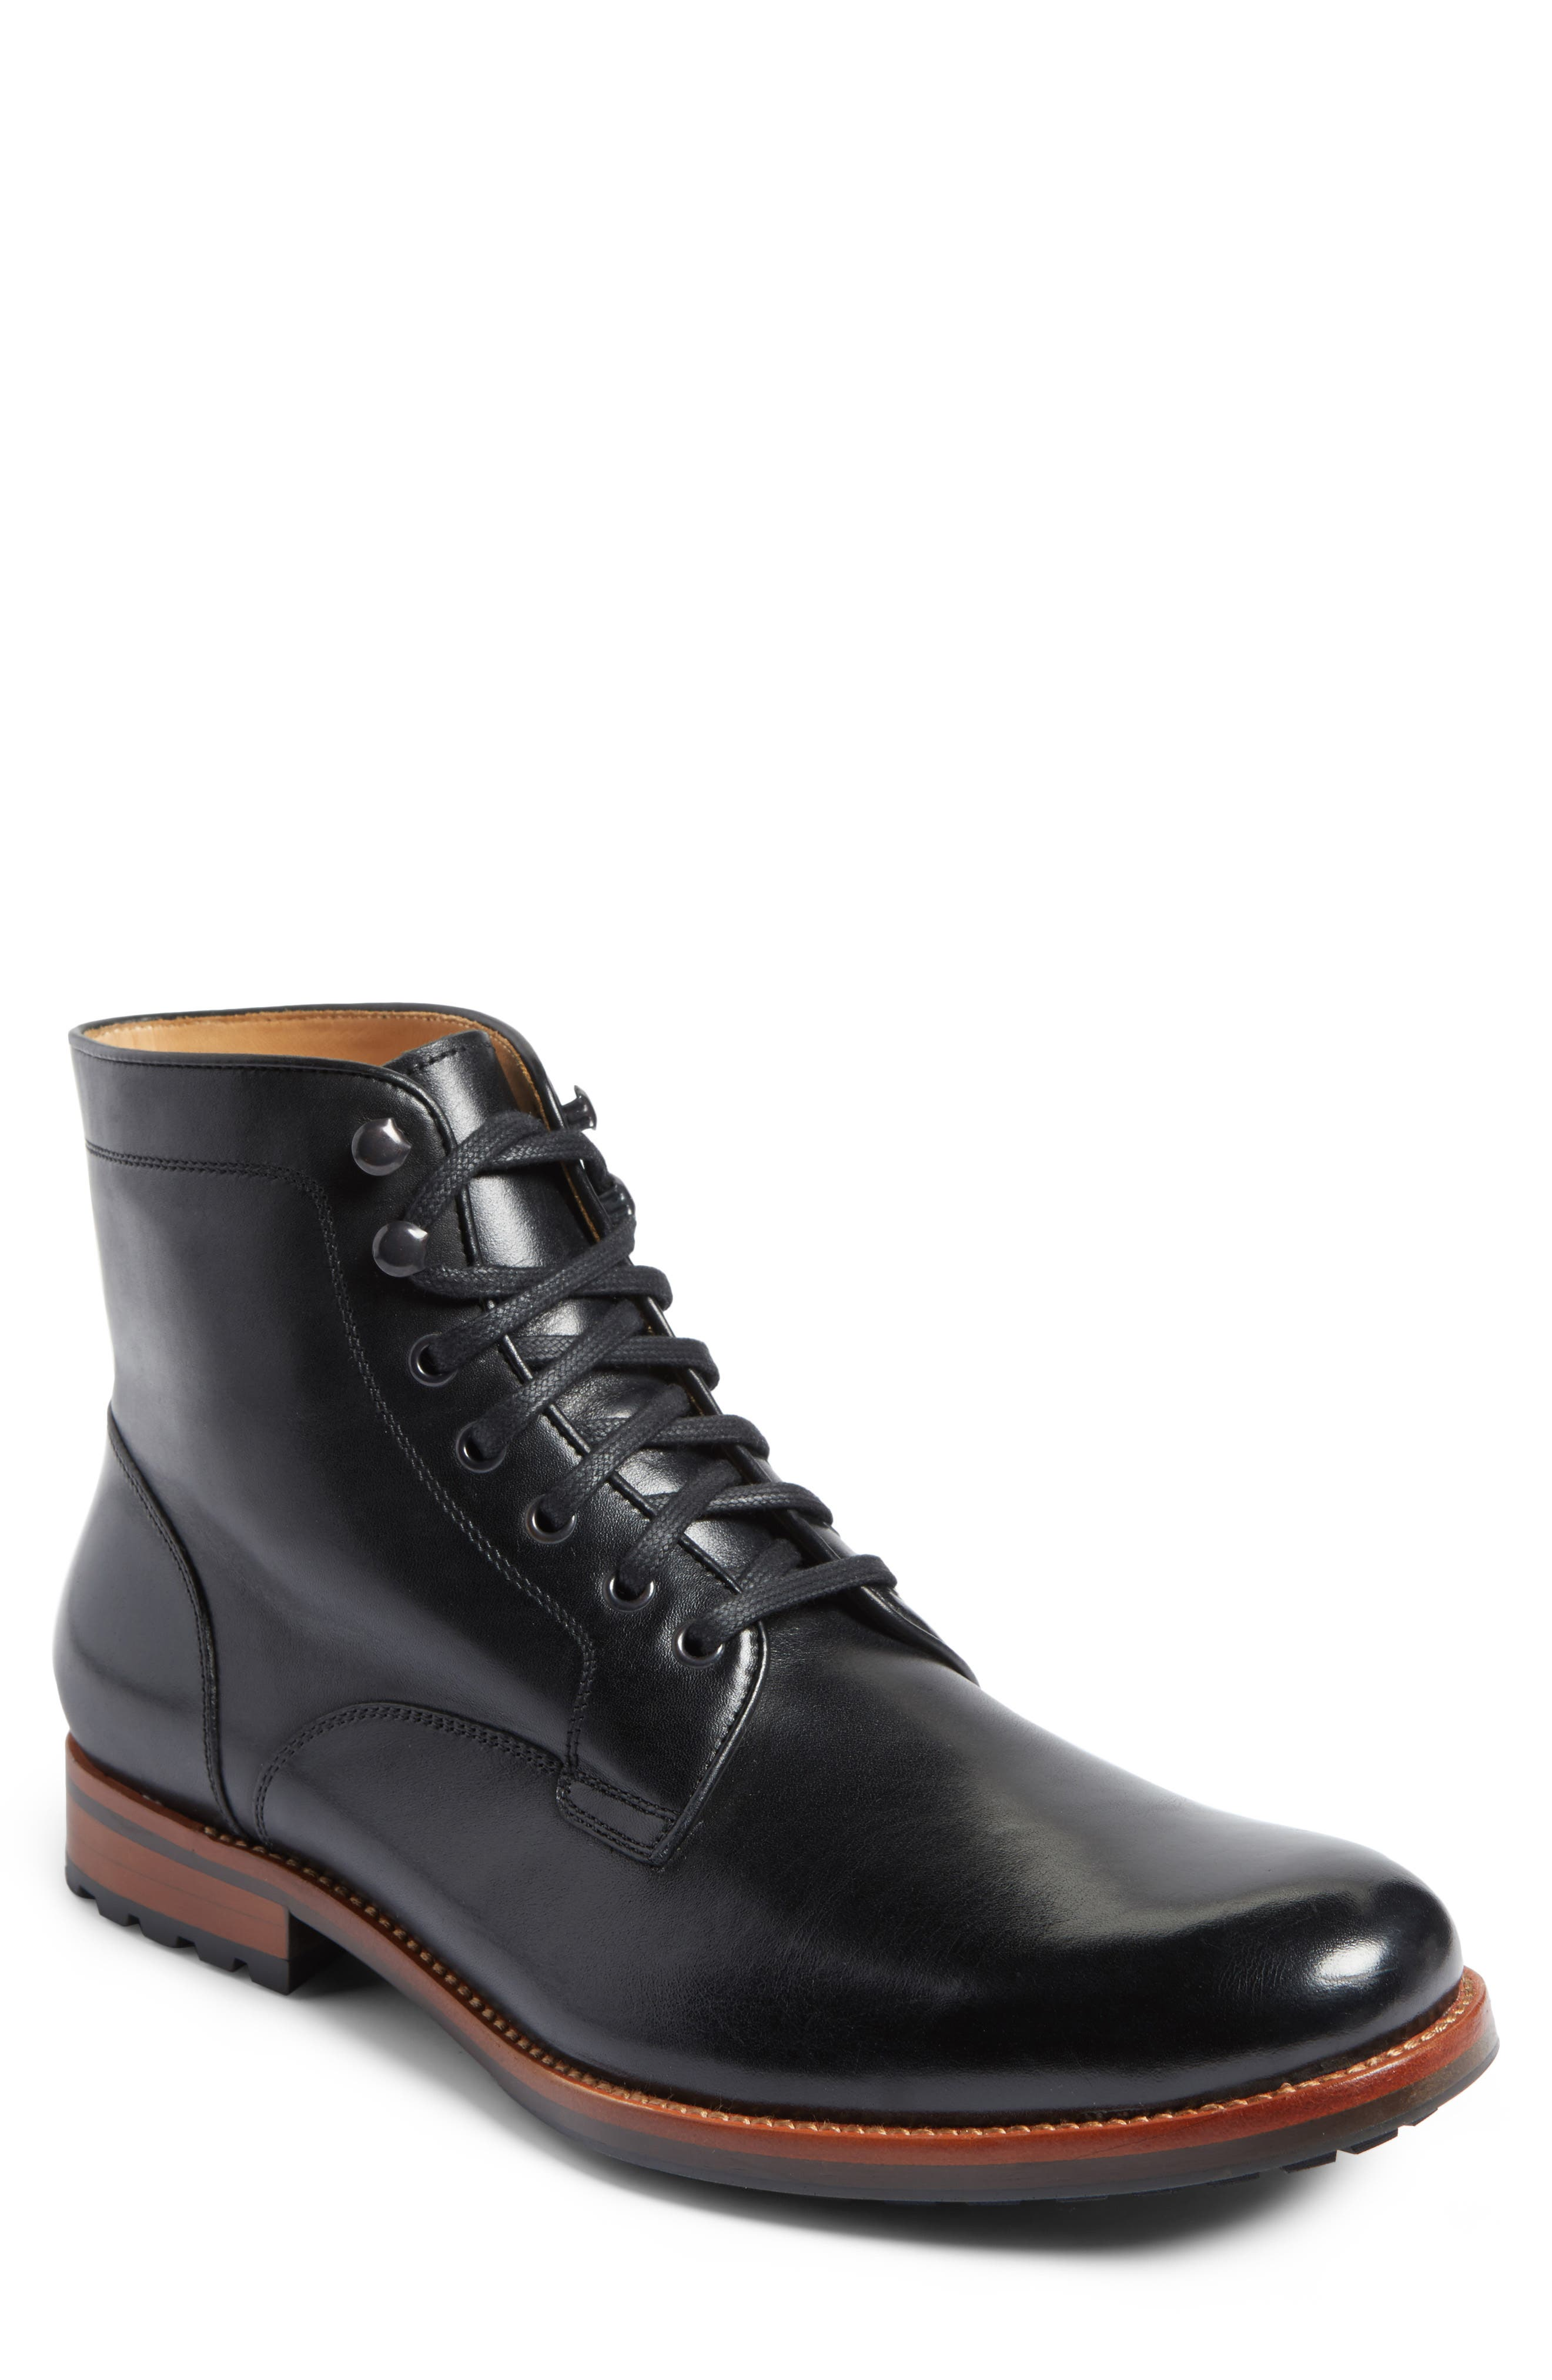 Main Image - John W. Nordstrom® Axeford Plain Toe Boot (Men)